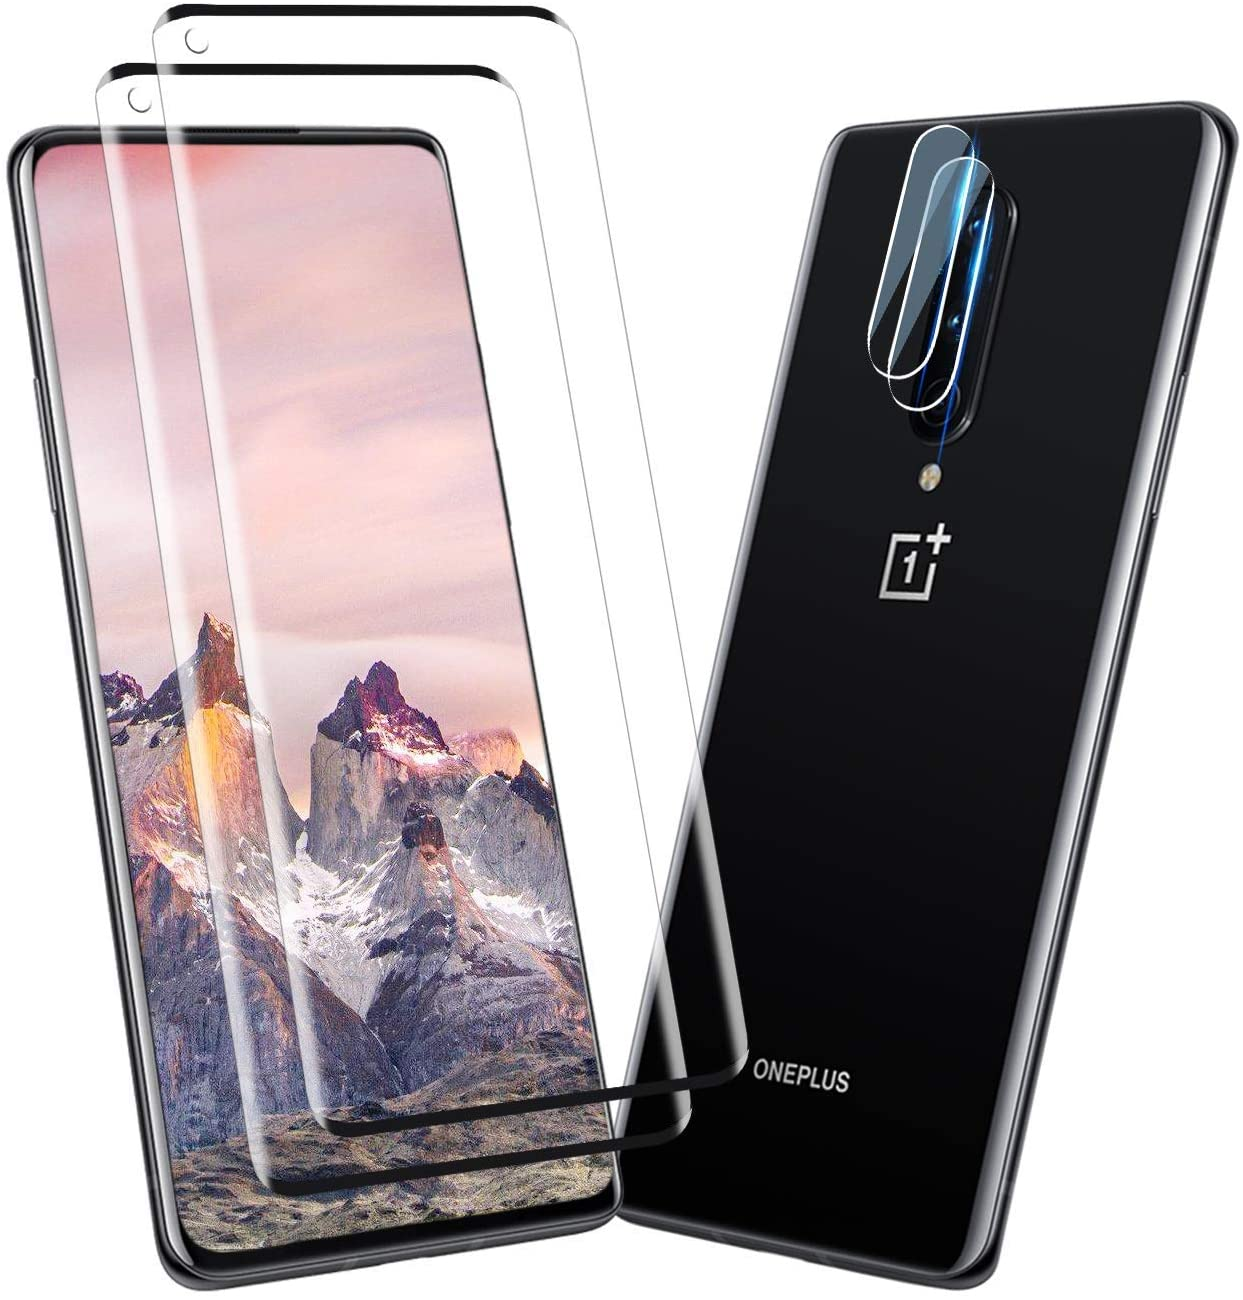 Oneplus 8 Screen Protector + Camera Lens Protectors, [2 +2Pack] Full Coverage Tempered Glass Screen Protector for Oneplus 8 5G [3D Glass] [Anti-Scratch]